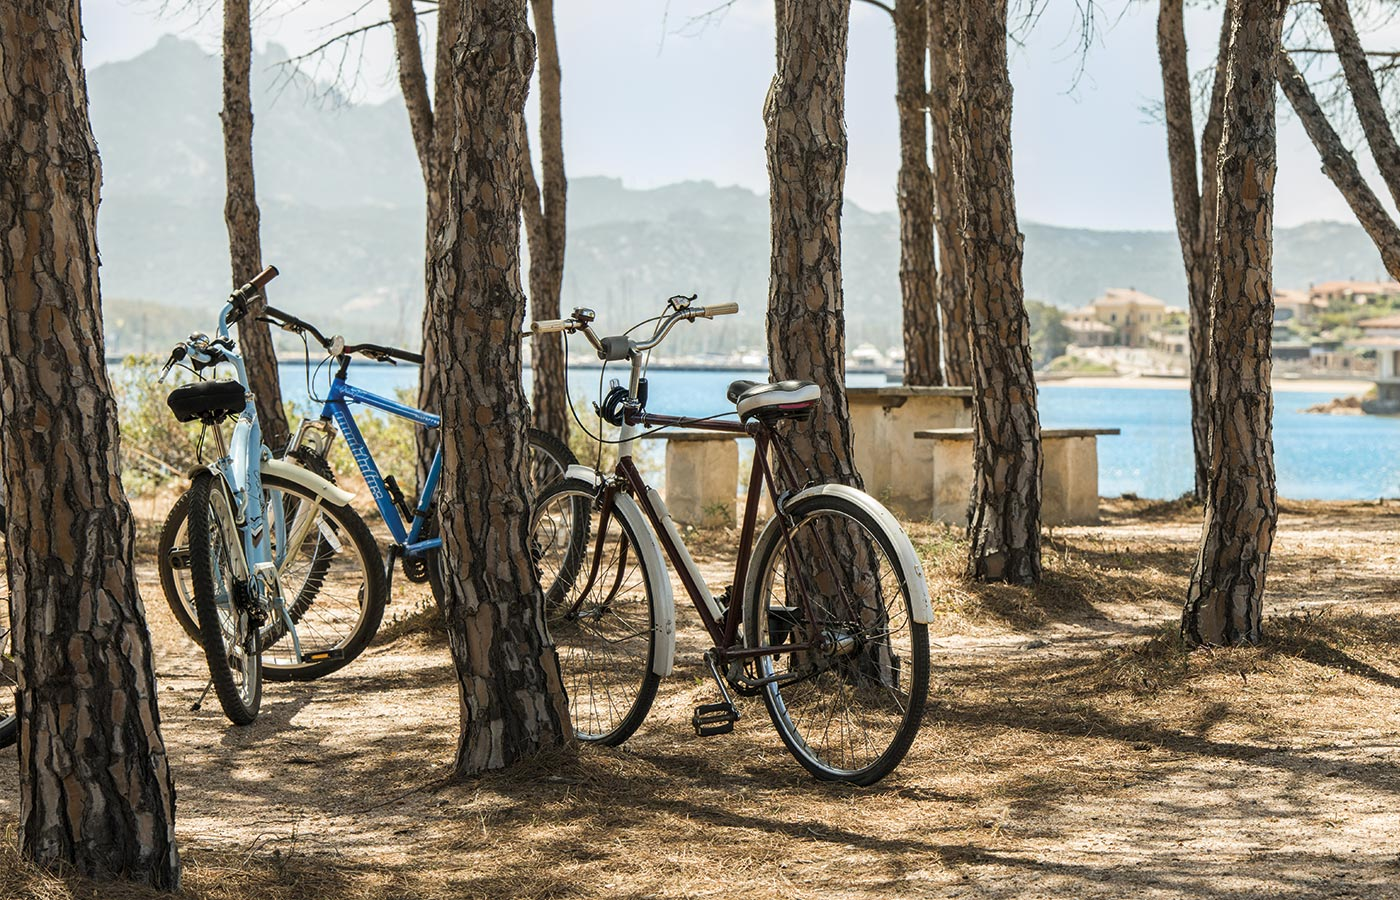 A bike trip along the seaside in Sardinia